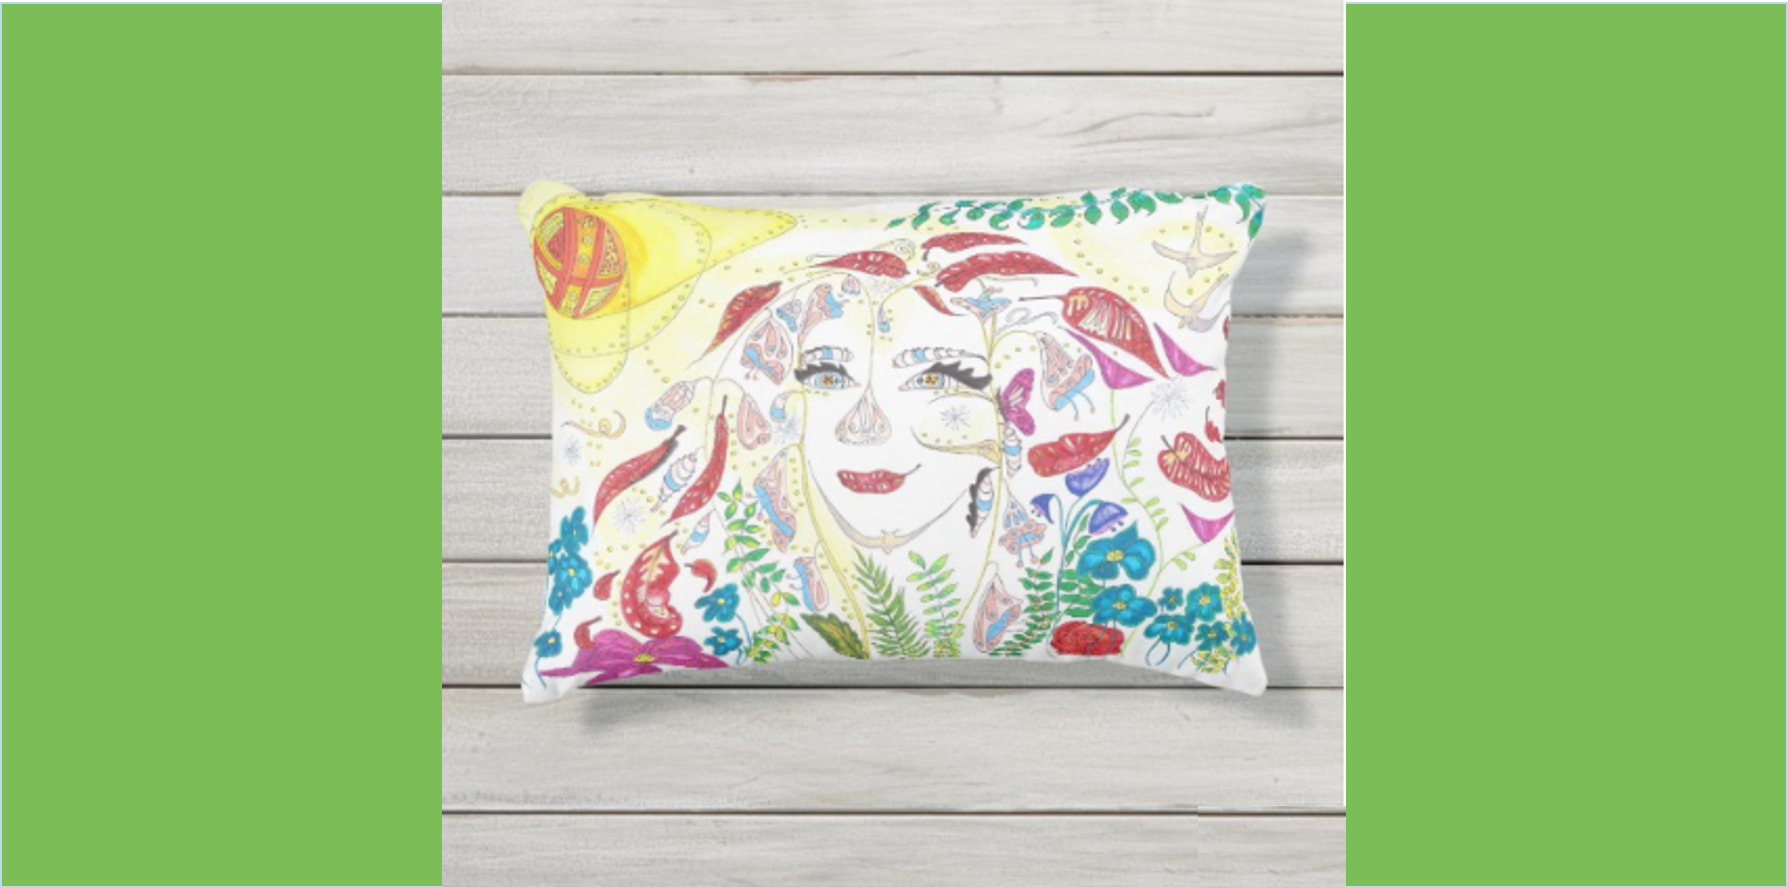 Medilludesign - Consciousness Expansion Outdoor Pillow